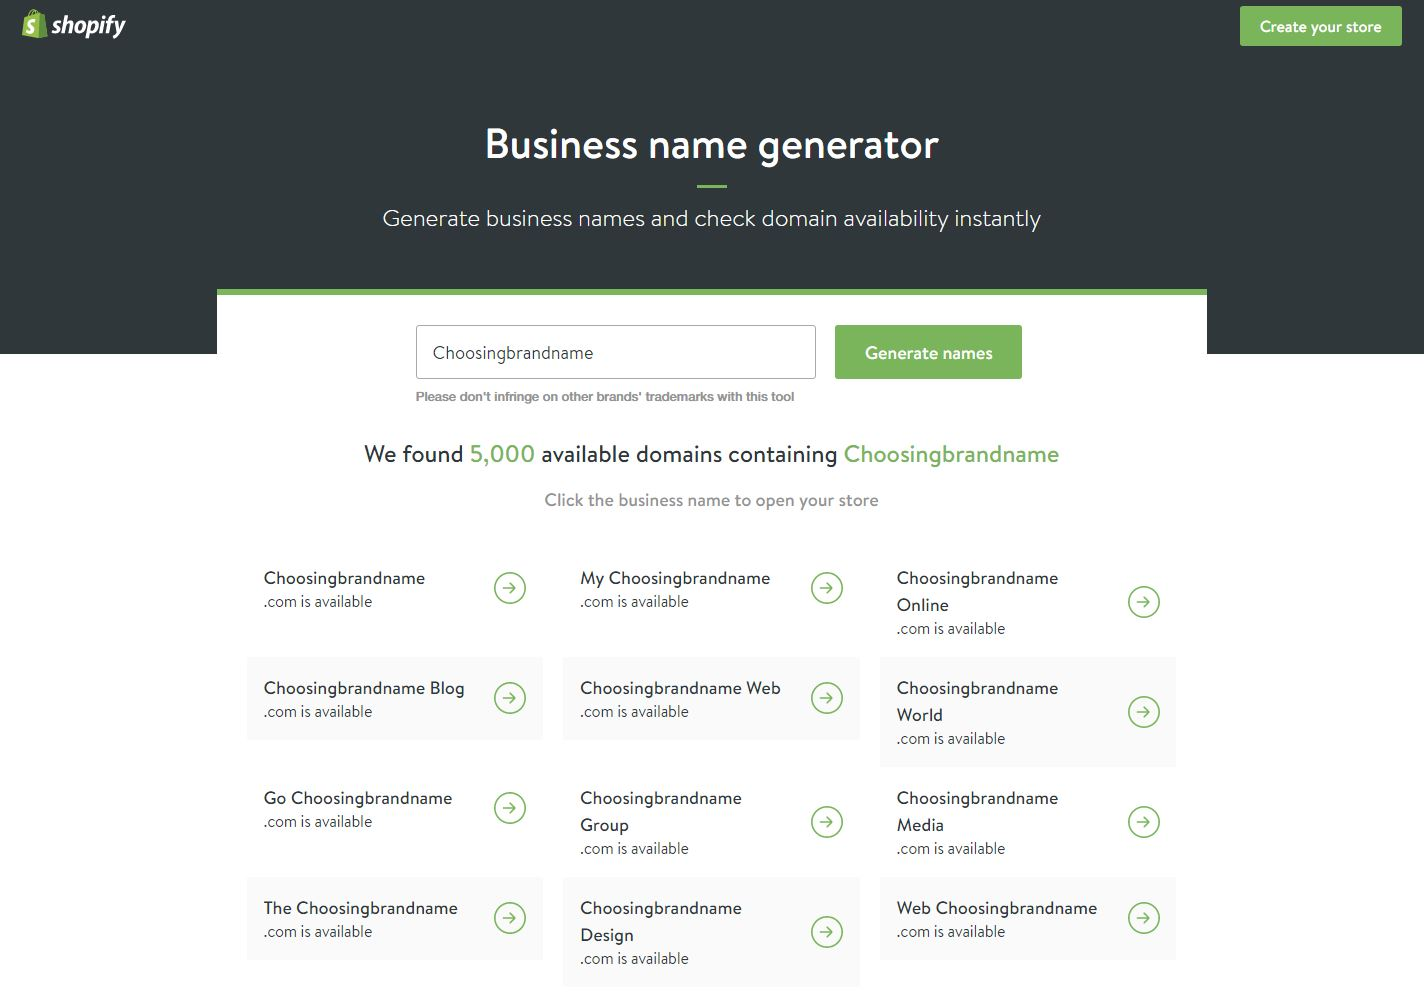 The Best Brand Name Generators: 15 Websites to Generate